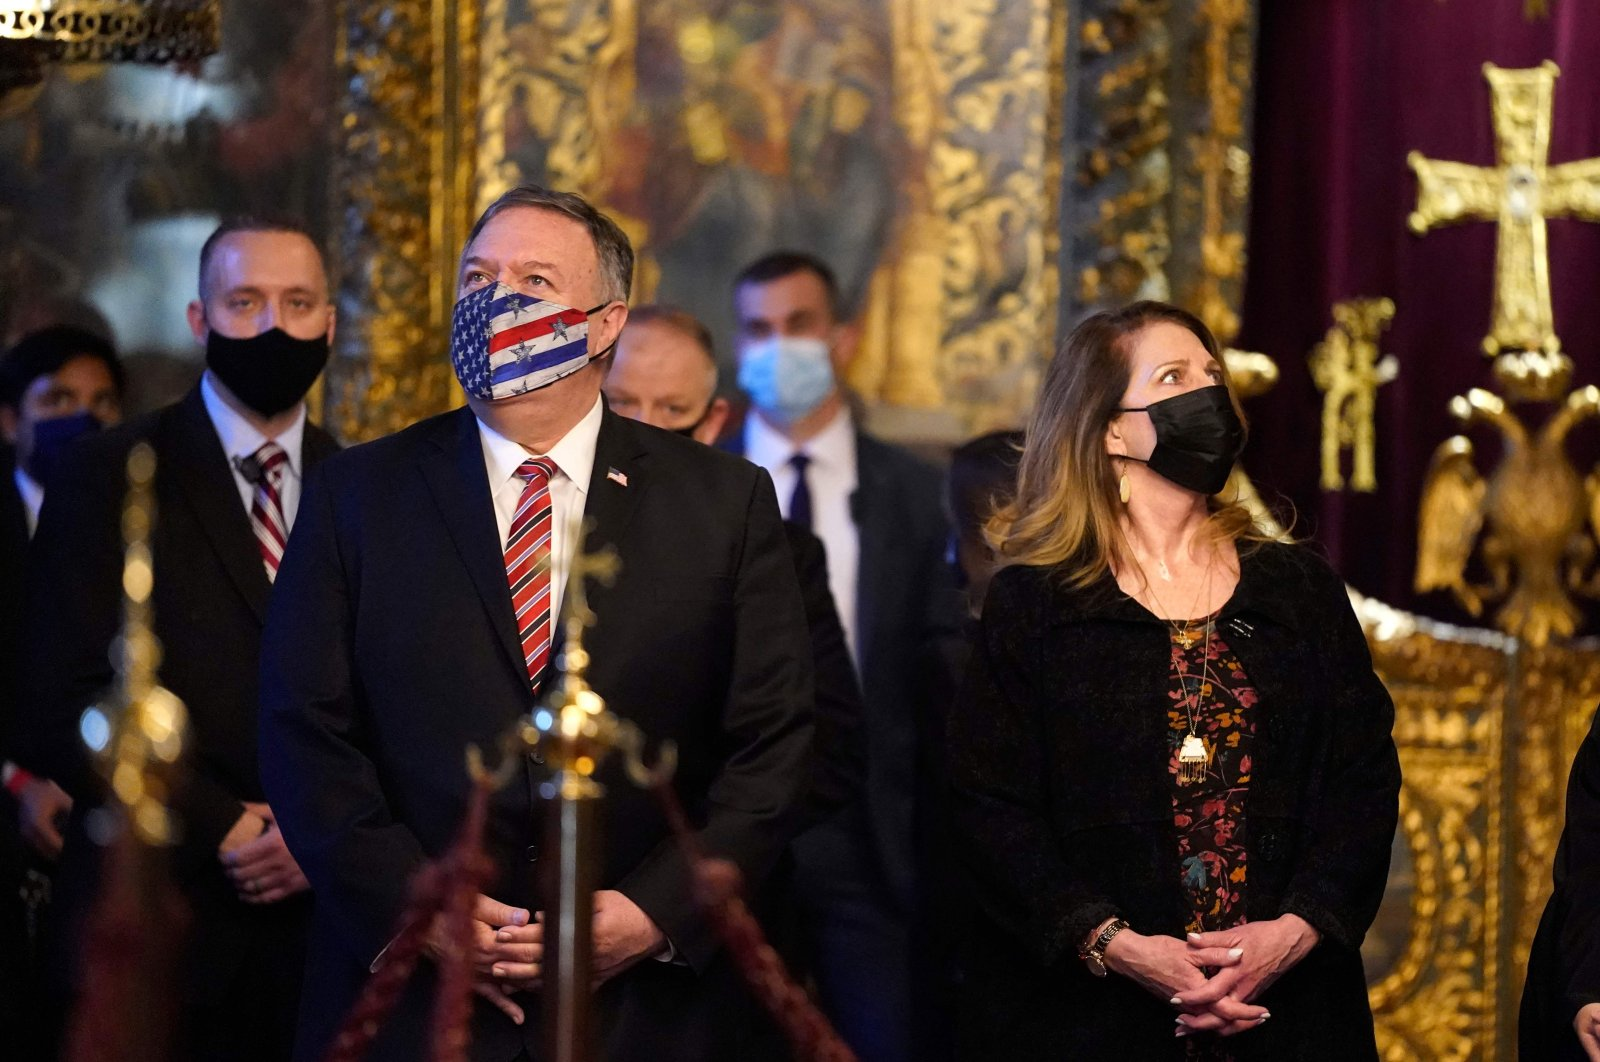 U.S. Secretary of State Mike Pompeo (L) and his wife, Susan, tour the Patriarchal Church of St. George in Istanbul, Nov. 17, 2020. (AFP)